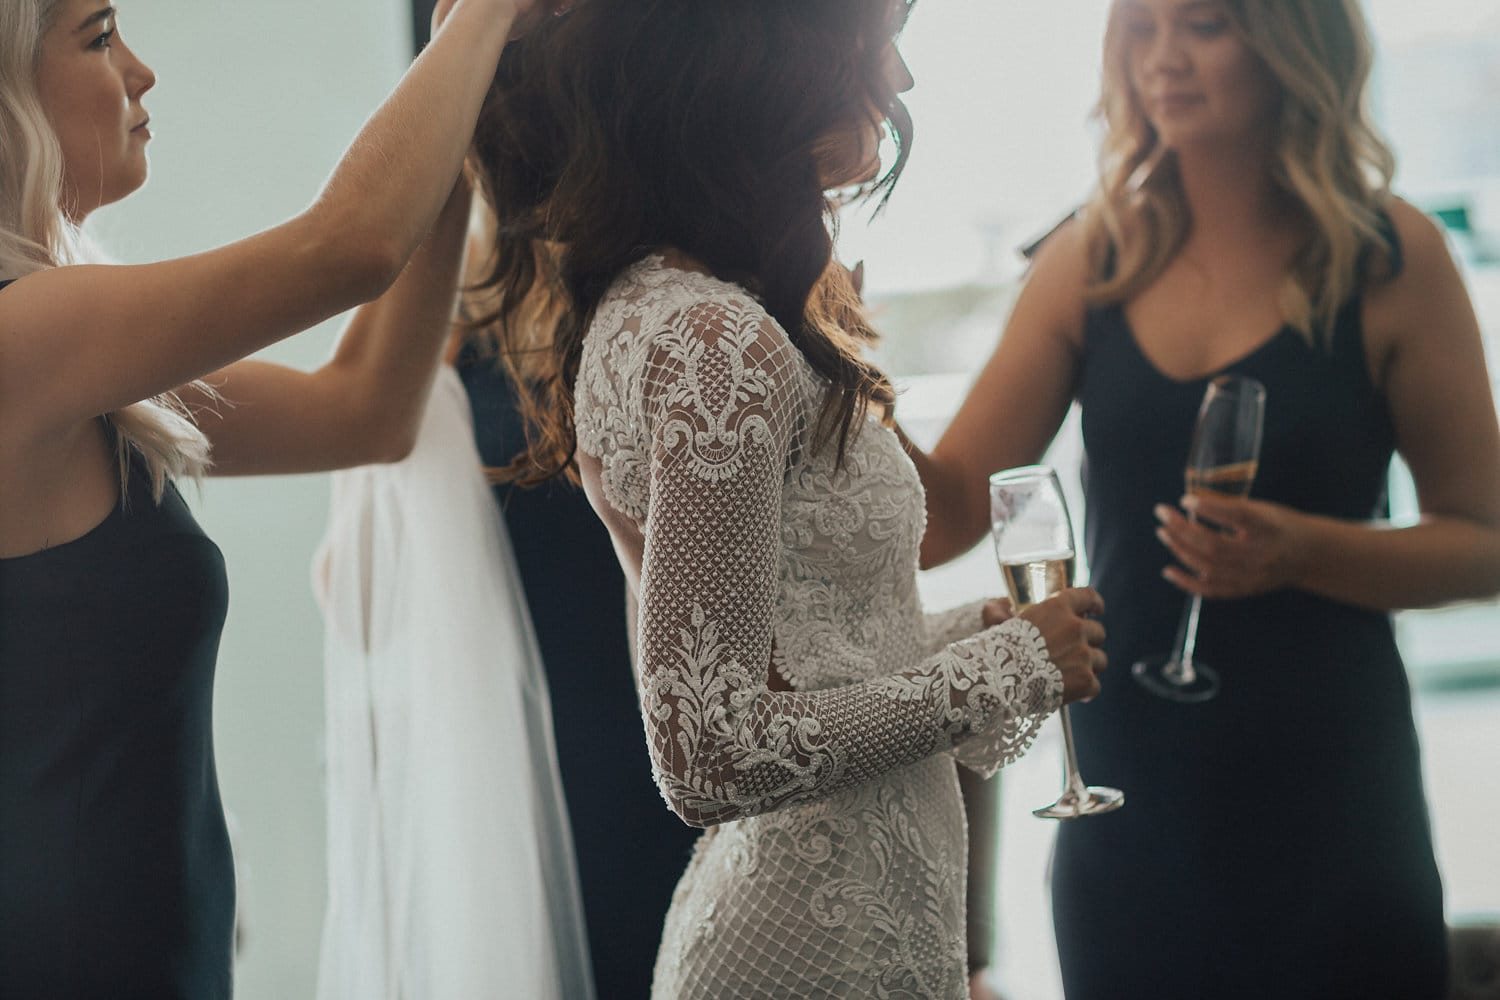 Real Weddings | Vinka Design | Real Brides Wearing Vinka Gowns | Nicole and Hayden - Nicole and bridesmaids attending to her veil close up showing stunning detail of long sleeves of bespoke dress